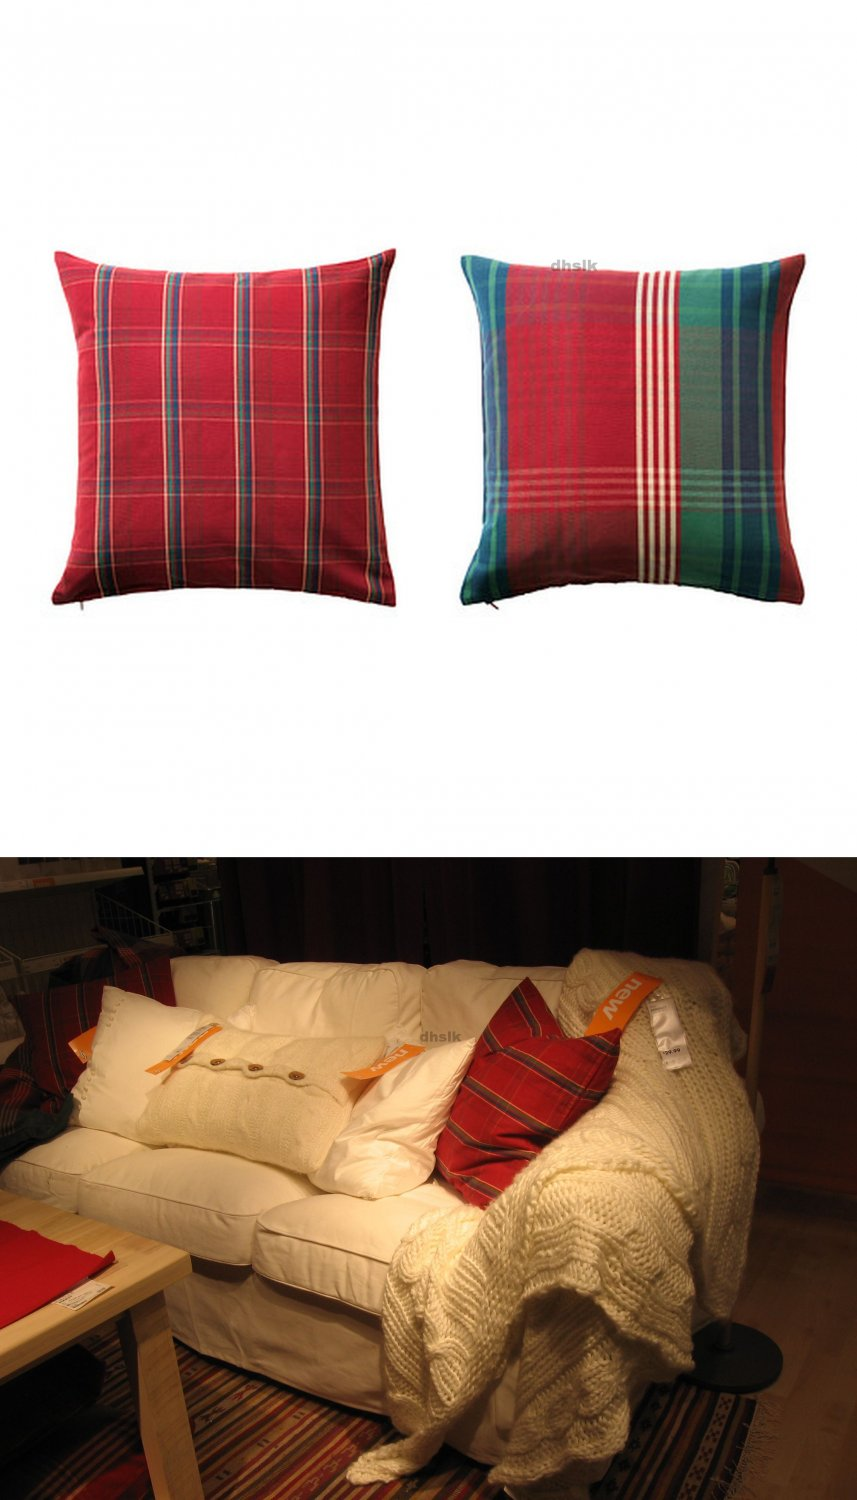 Ikea Annbritt Red Plaid Pillow Cover Sham Cushion Cvr 2